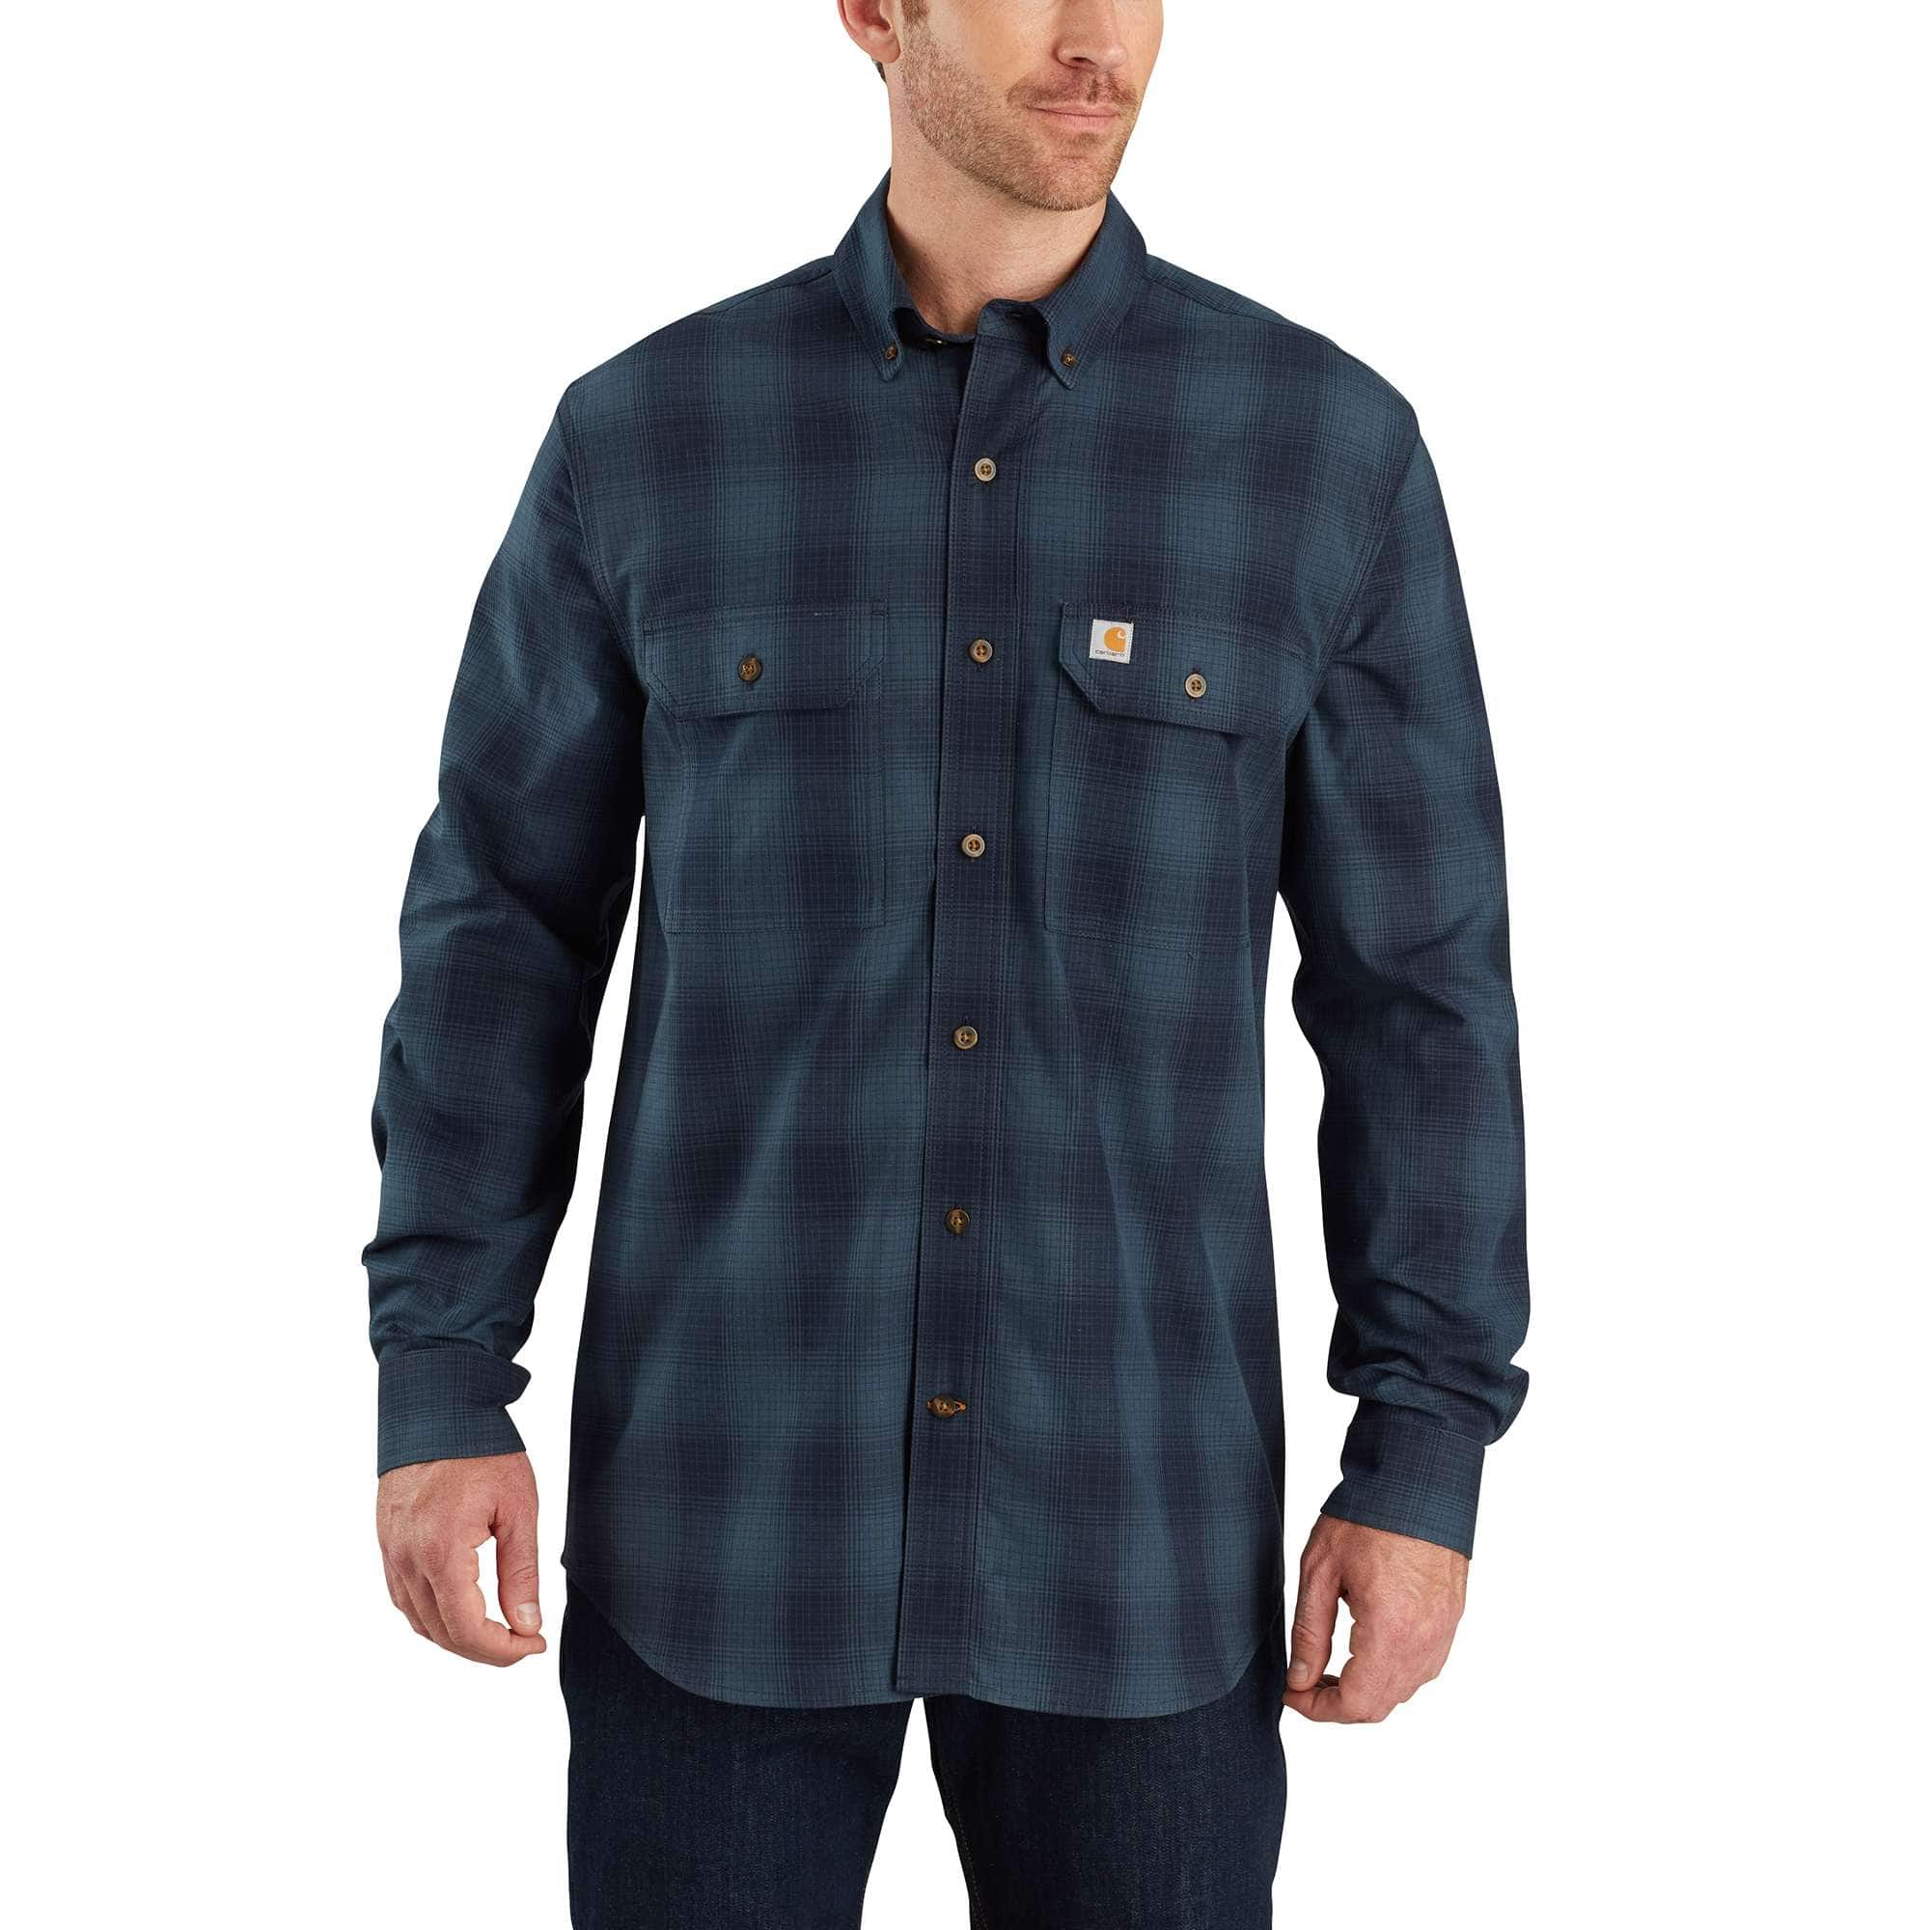 Carhartt Mens Fort Plaid Long Sleeve Shirt Button Down Shirt